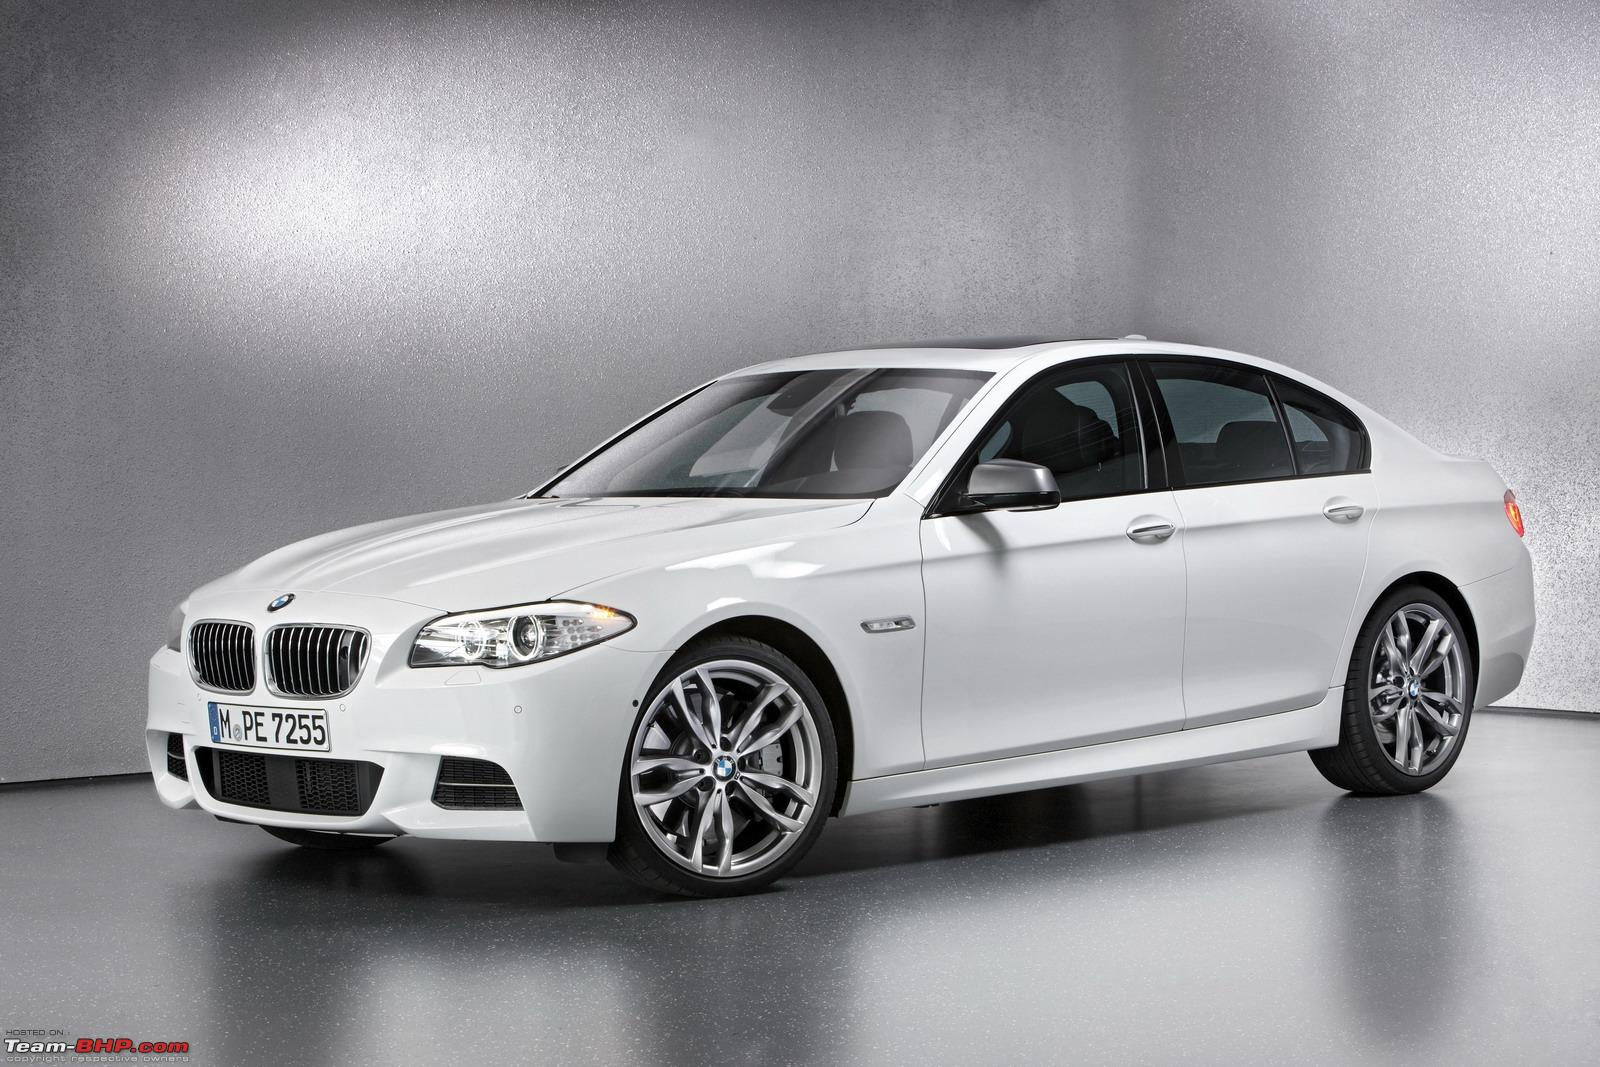 bmw 39 s new torque monster 3 0l i 6 tri turbo diesel 381 hp 740 nm team bhp. Black Bedroom Furniture Sets. Home Design Ideas